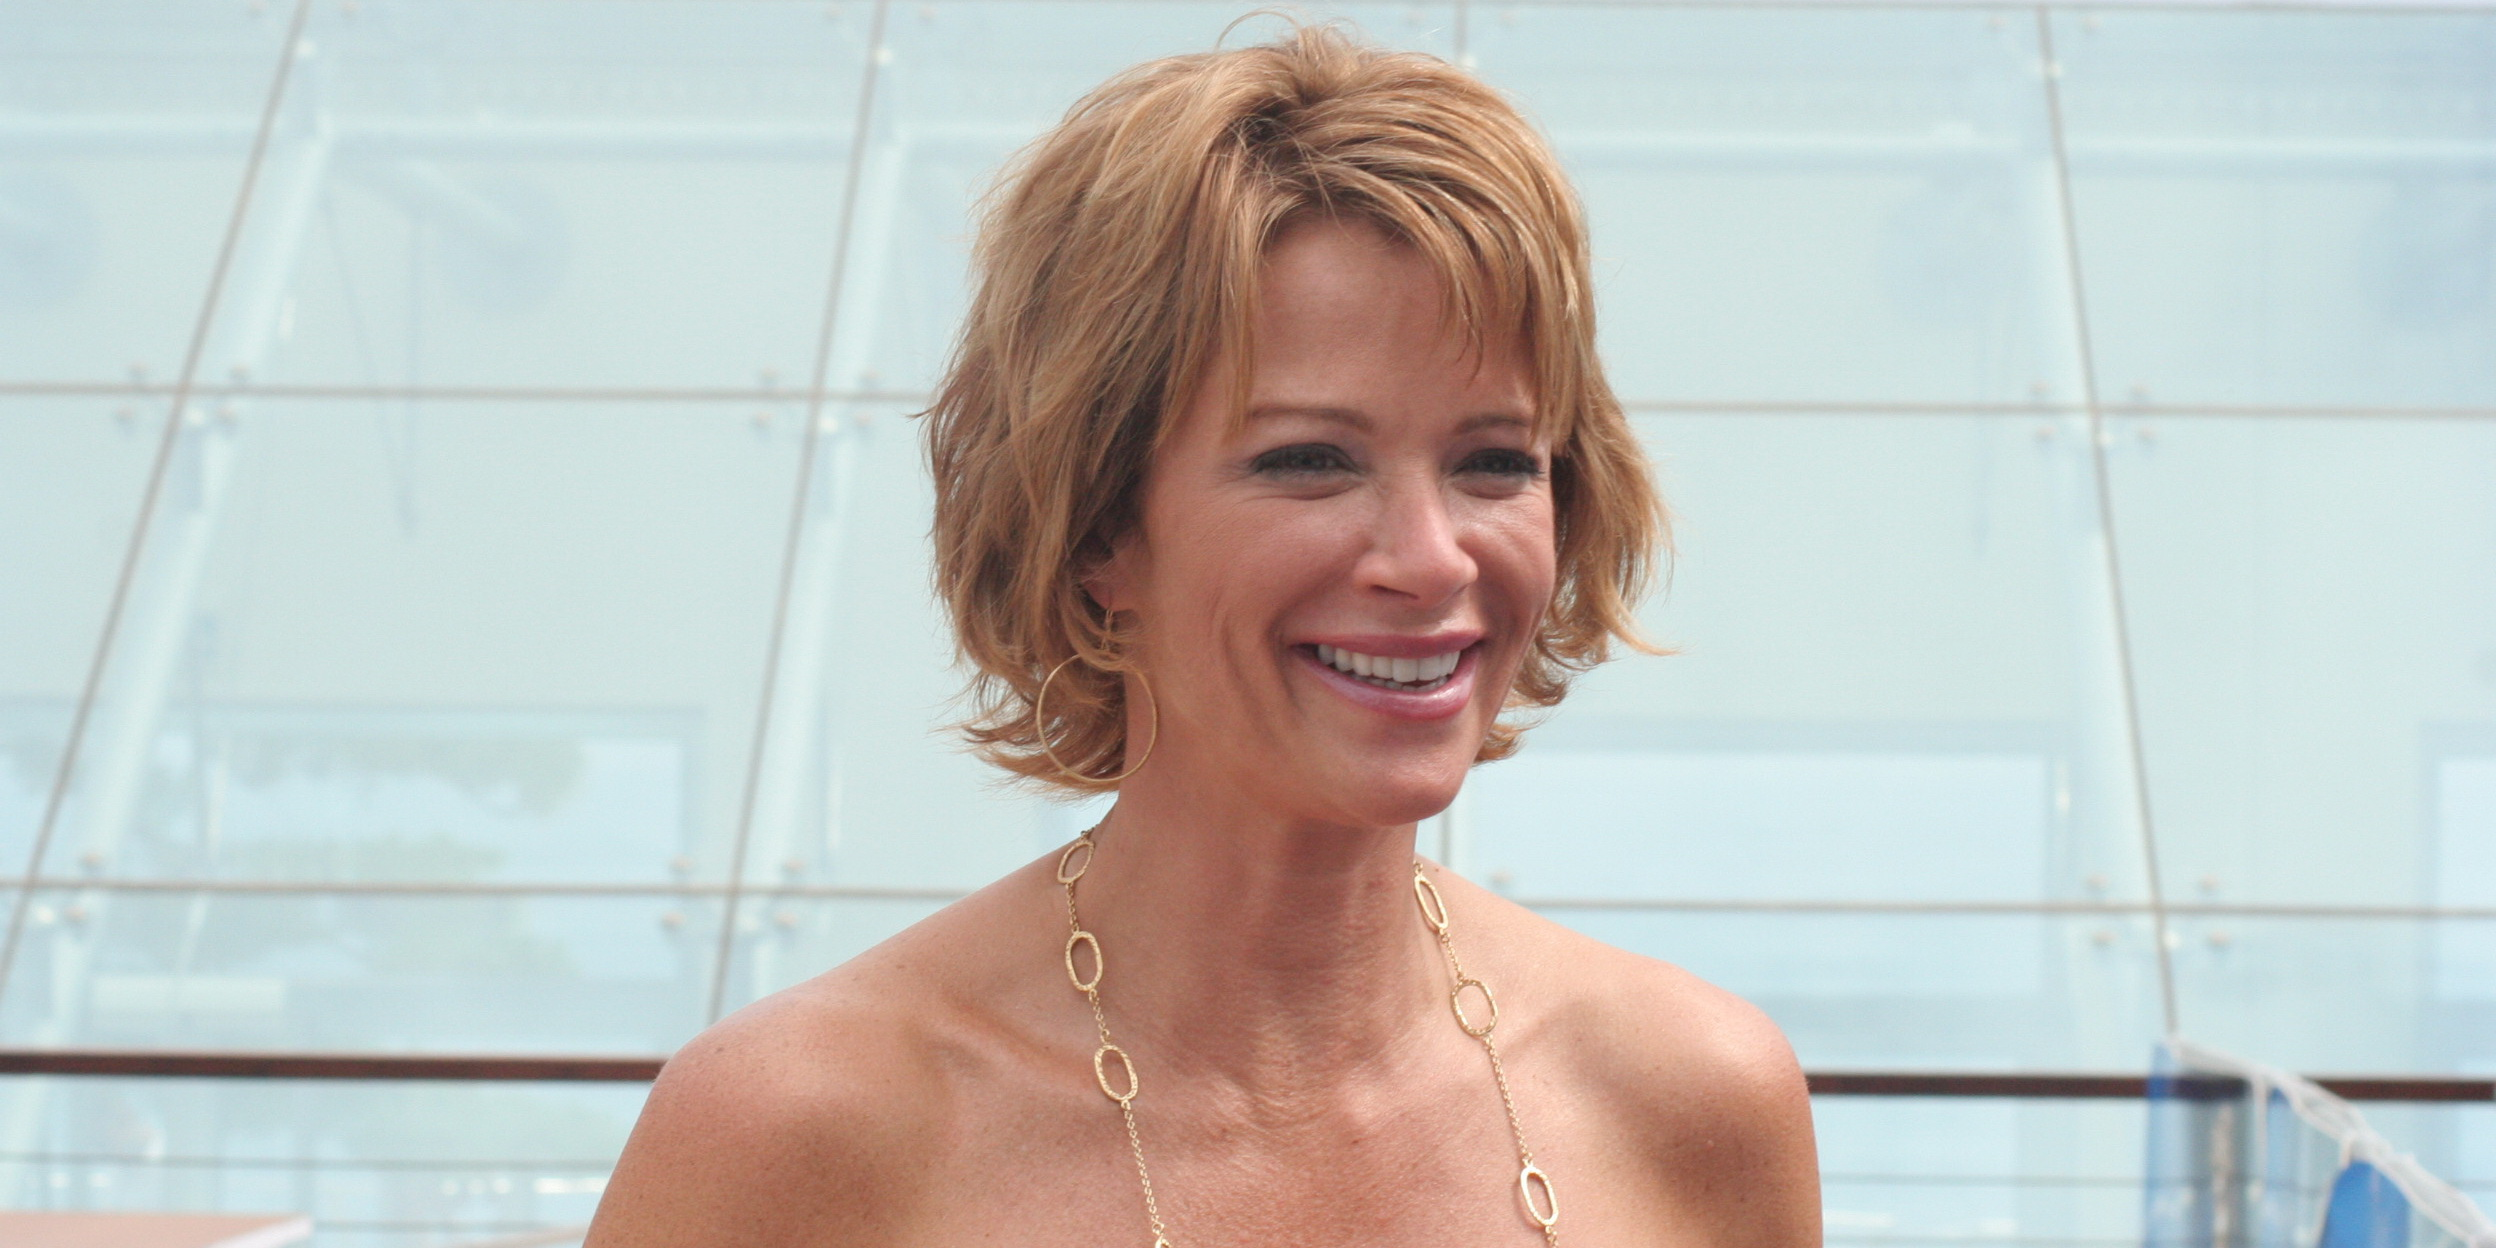 lauren holly movies - photo #1